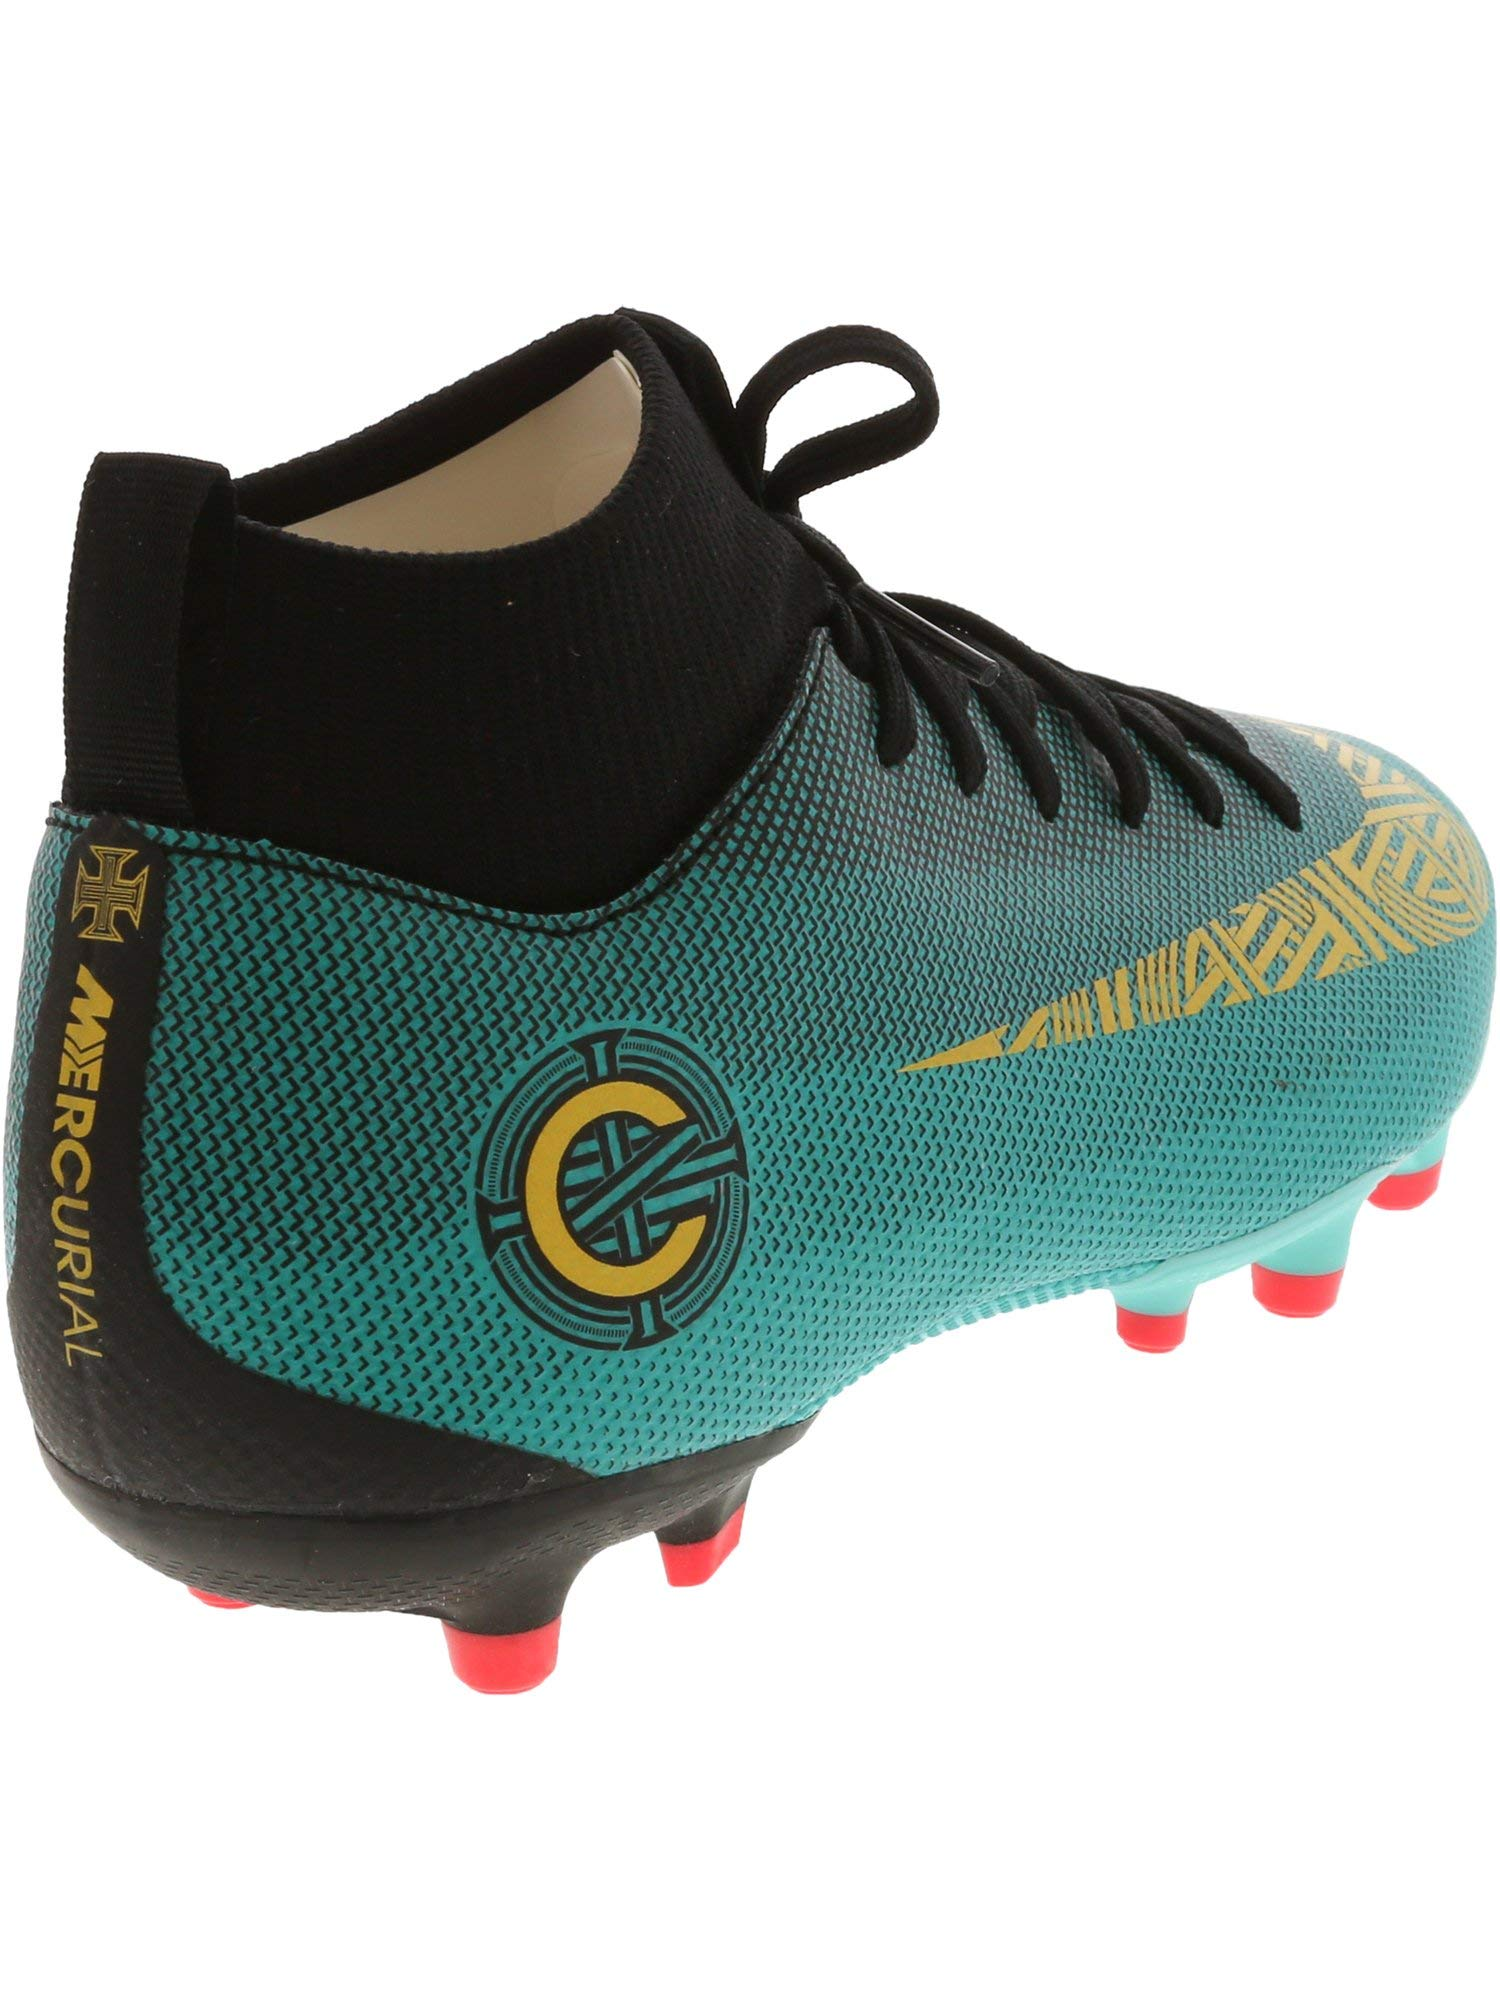 9913263ec Nike Superfly 6 Academy Gs Cr7 Clear Jade Metallic Vivid Gold Ankle-High  Soccer Shoe - 4M